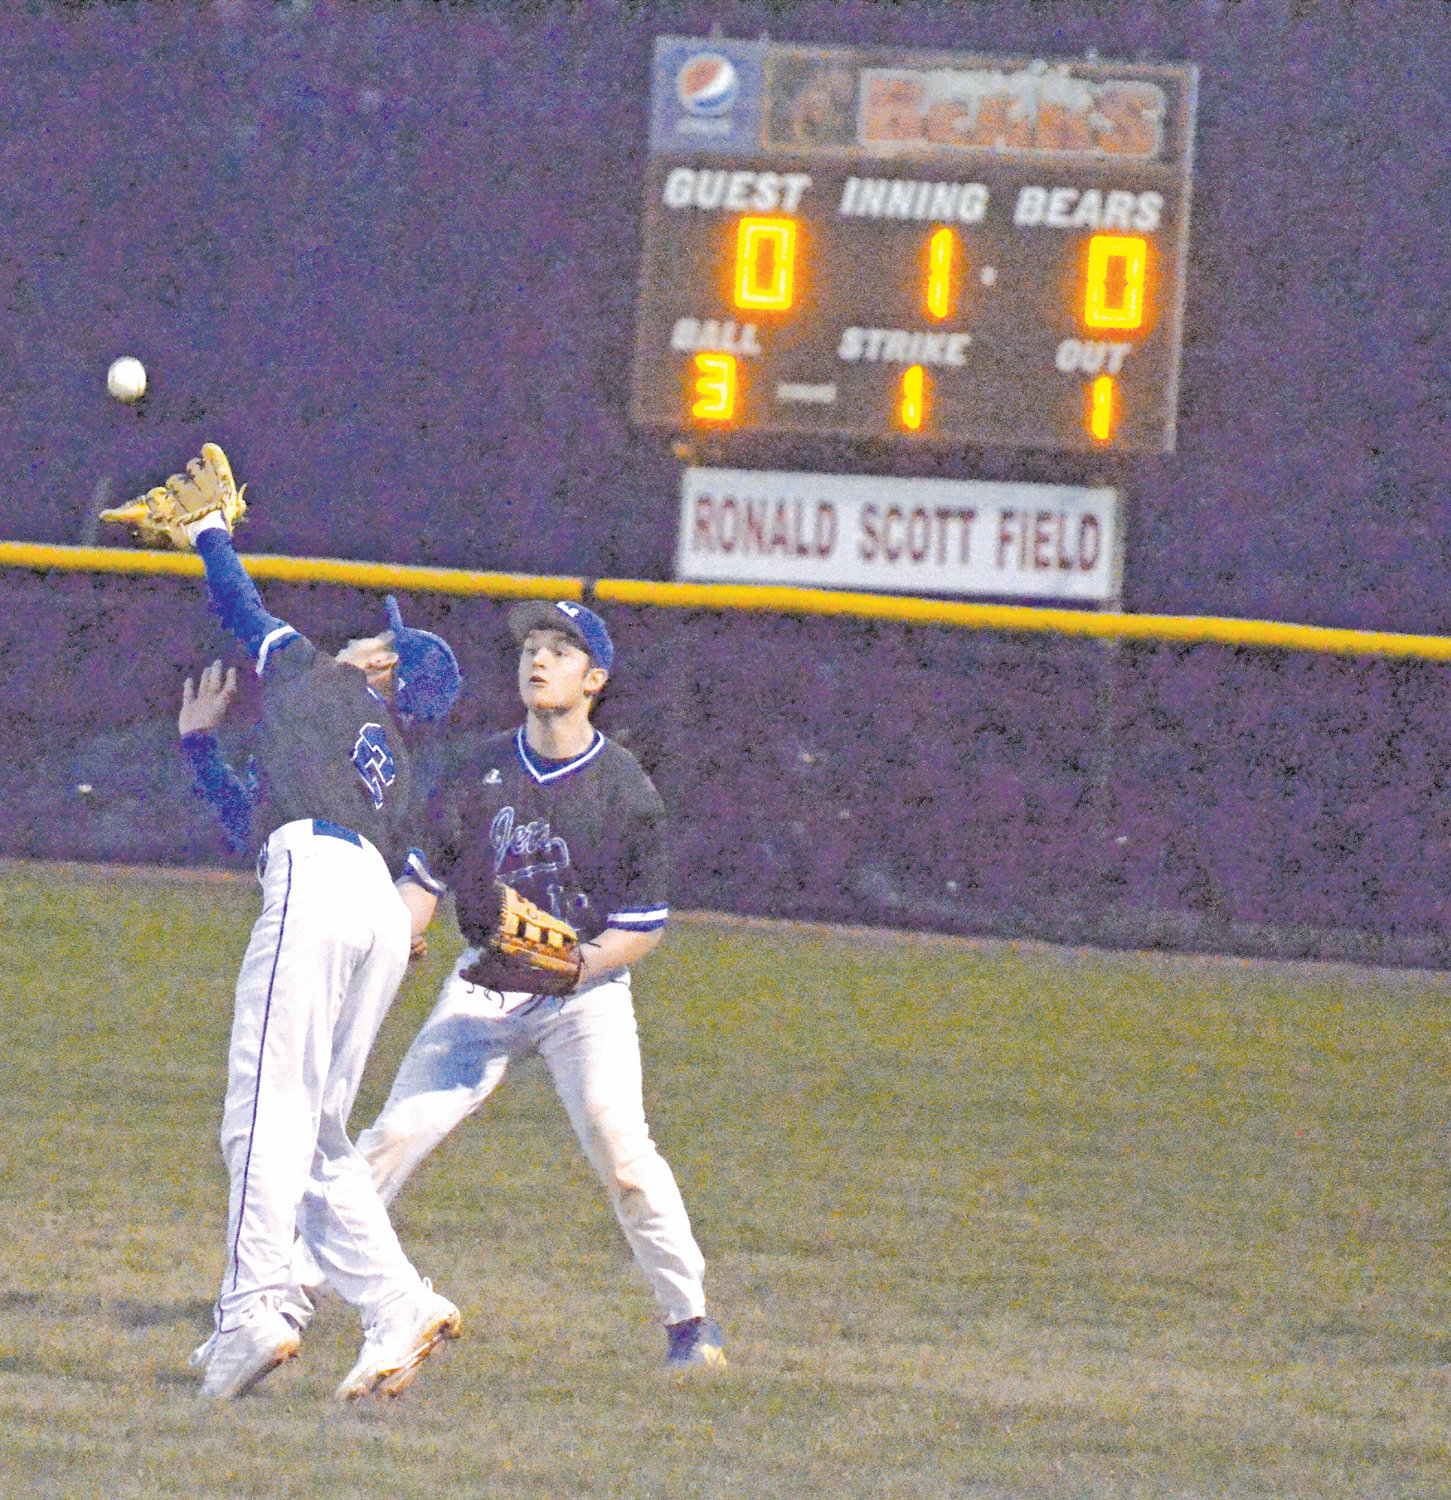 Jordan-Matthews misses the catch but wins the game In the bottom half of the first inning, Jordan-Matthews infielder Seth Moore misses the catch in right field at Chatham Central High School Thursday night as outfielder Landon Vickery looks on.  JM won the game 4-1.